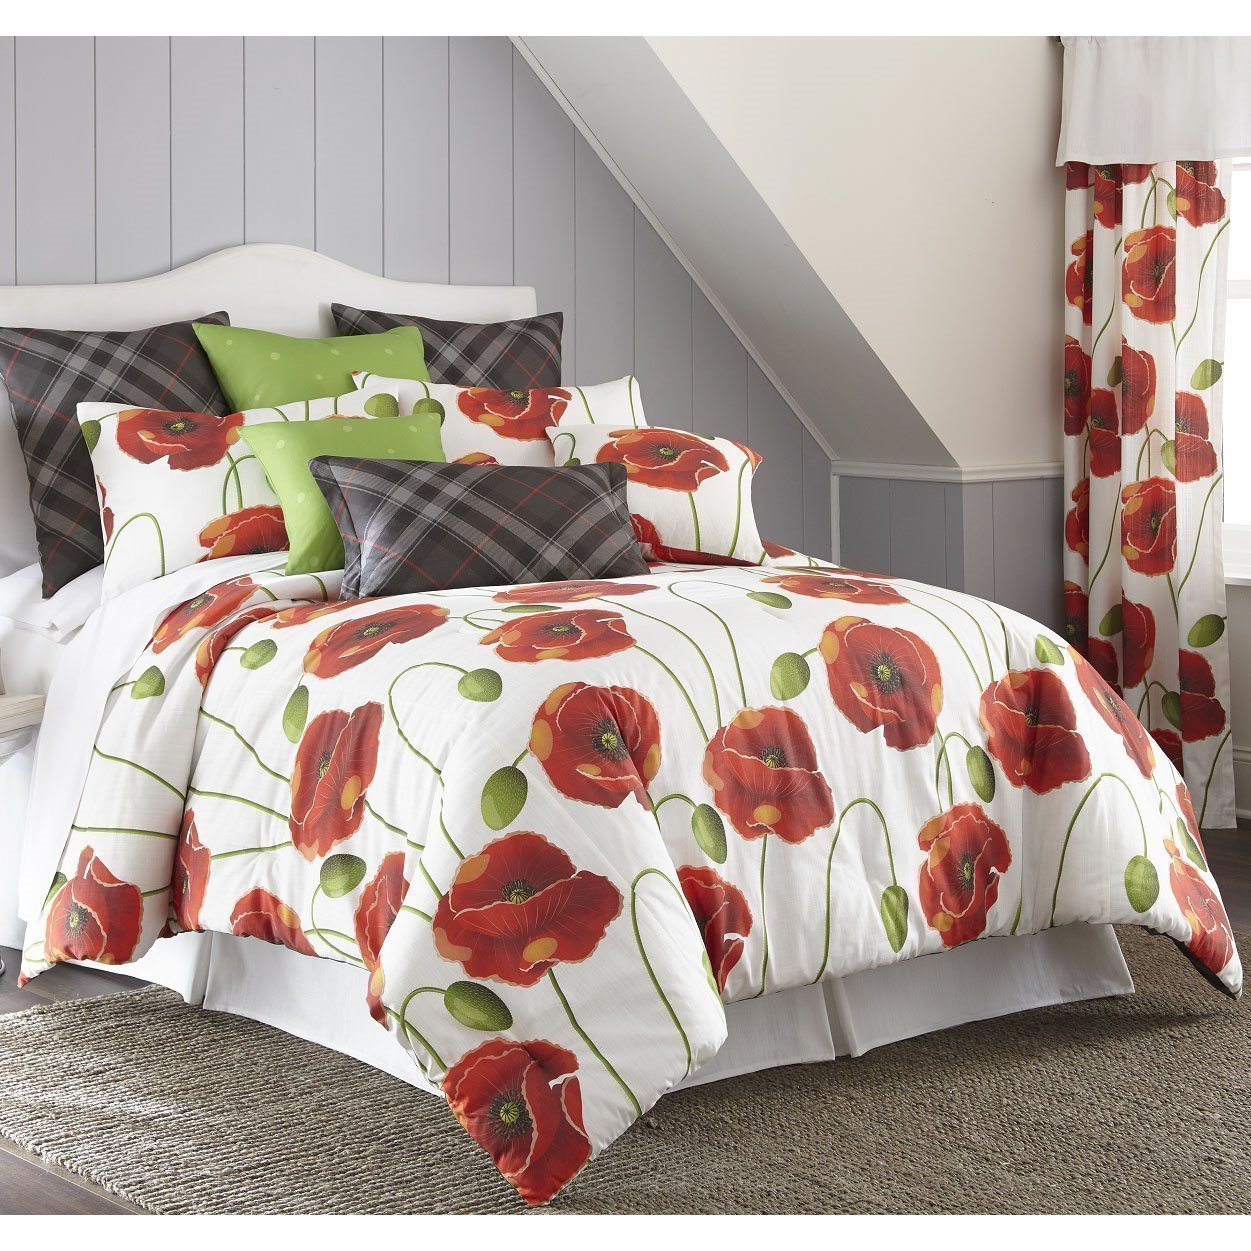 duvet set king sets covers linen quilt bed isabella belmondo provincial cover